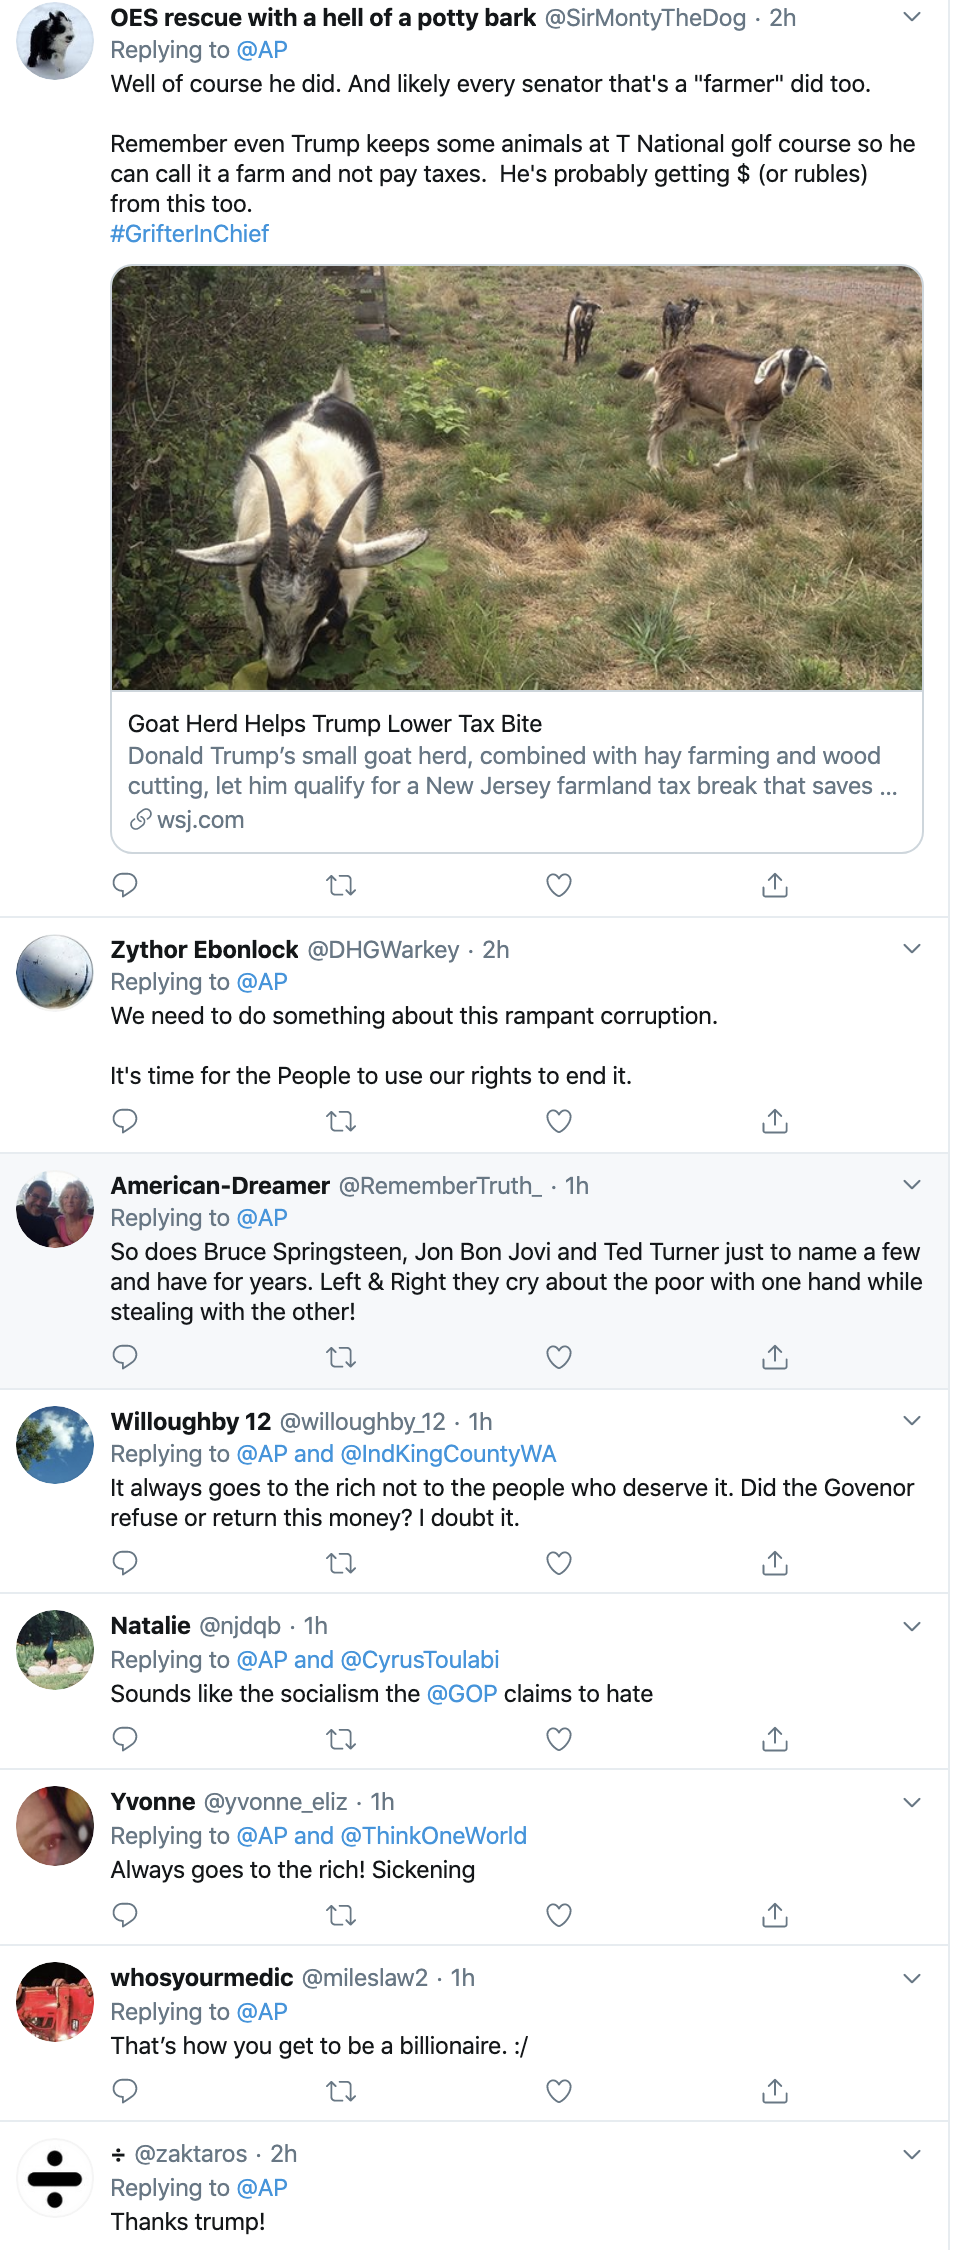 Screen-Shot-2019-10-17-at-11.54.43-AM GOP Governor Caught Funneling $125,000 Via Farmer Bail Out Fund Animal Rights Corruption Crime Domestic Policy Donald Trump Election 2016 Election 2020 Environment Featured Politics Top Stories